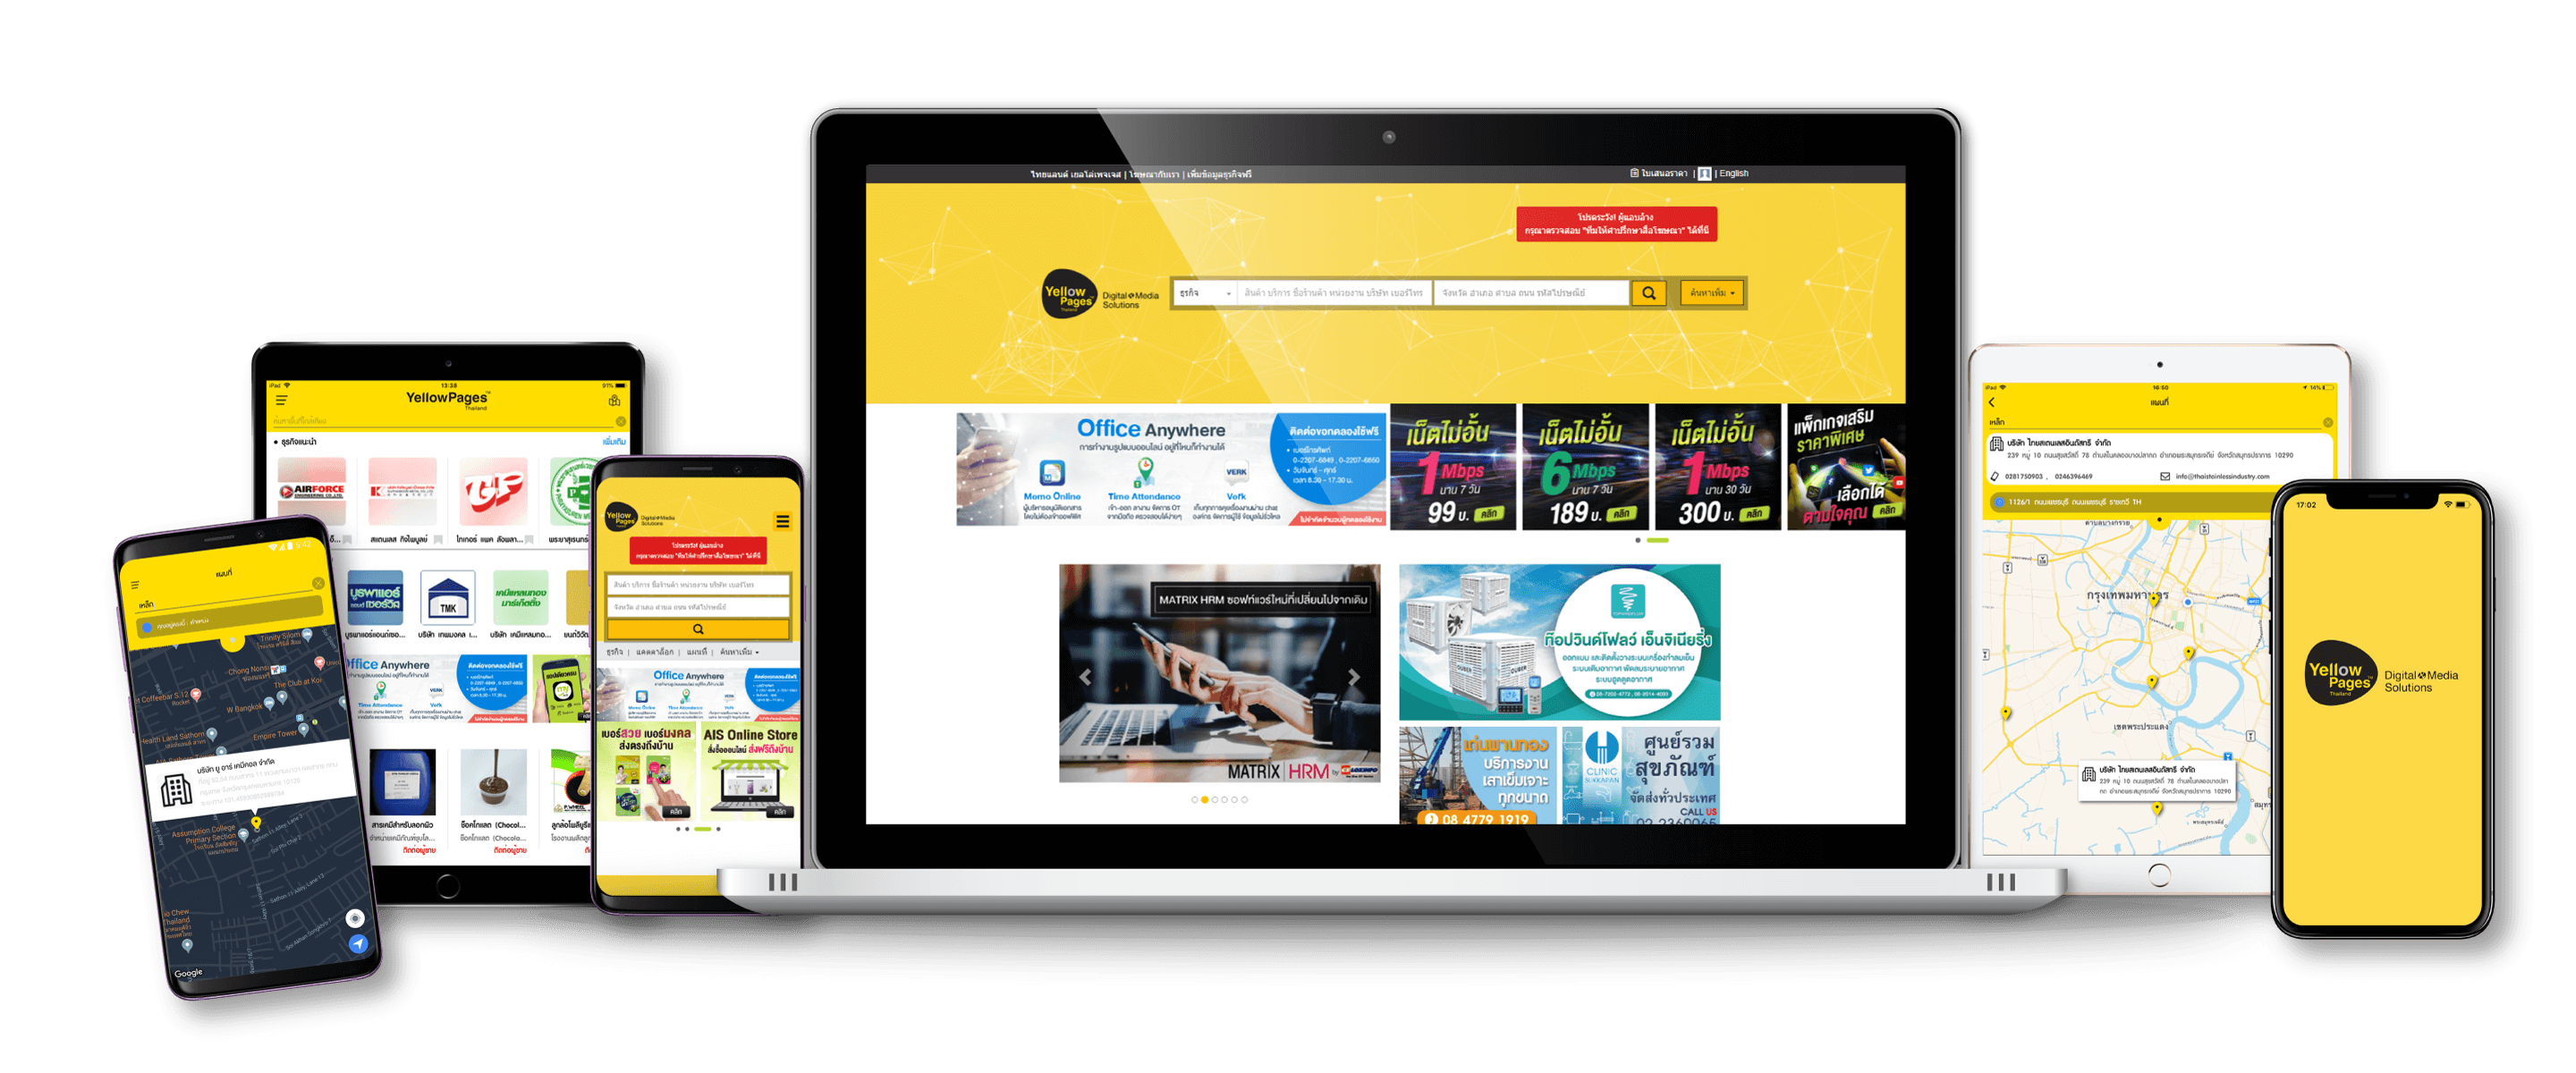 Thailand Yellowpages Digital Products and Services - Devices